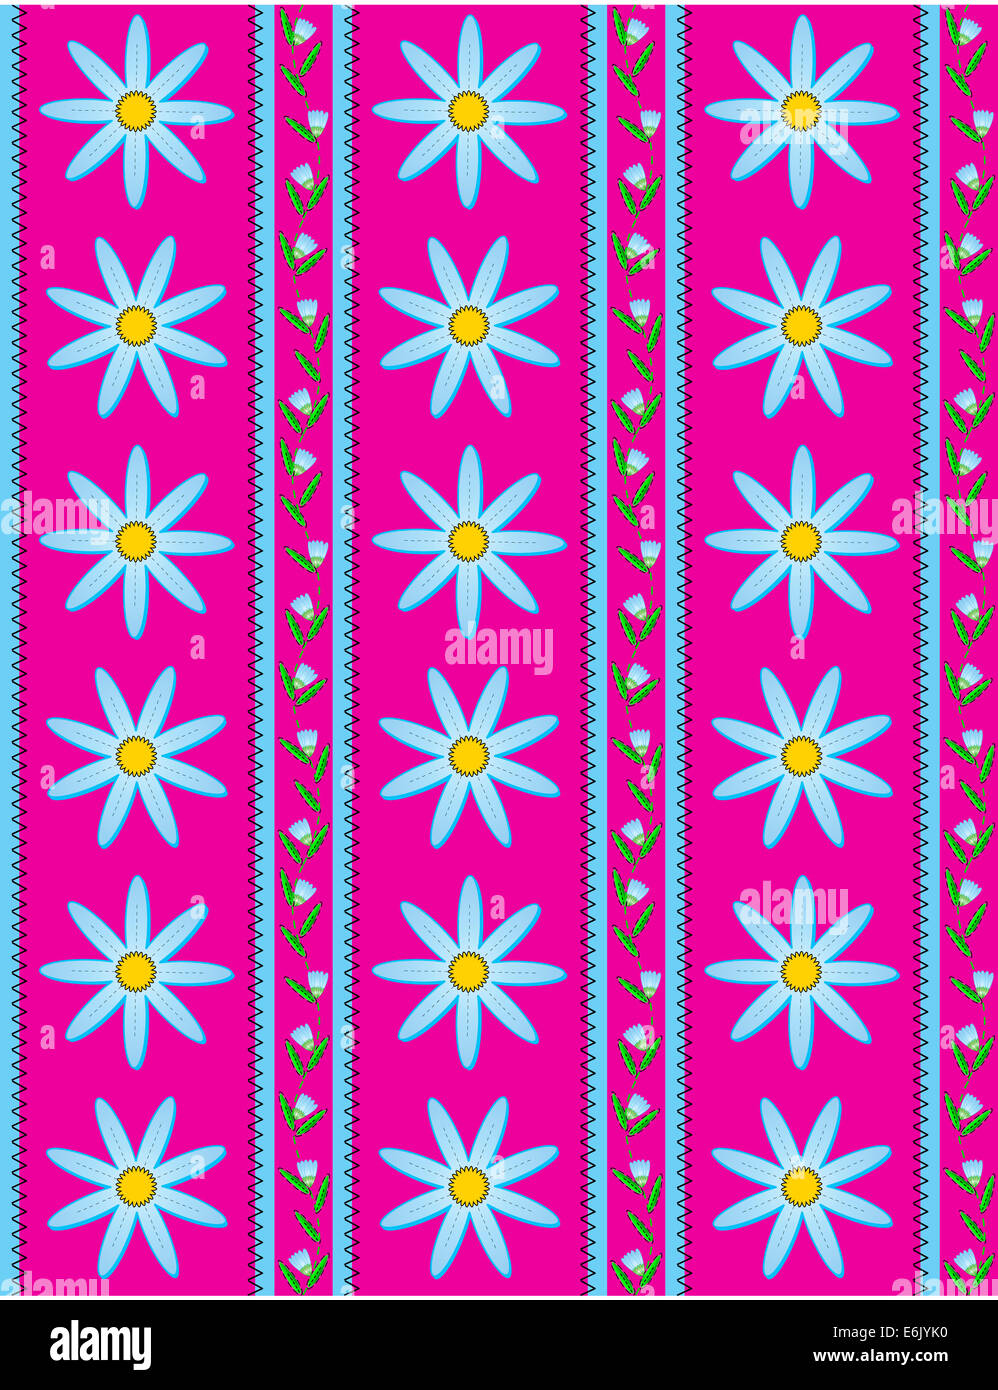 Jpg Pink Striped Wallpaper Background With Blue Flowers Bud Vine